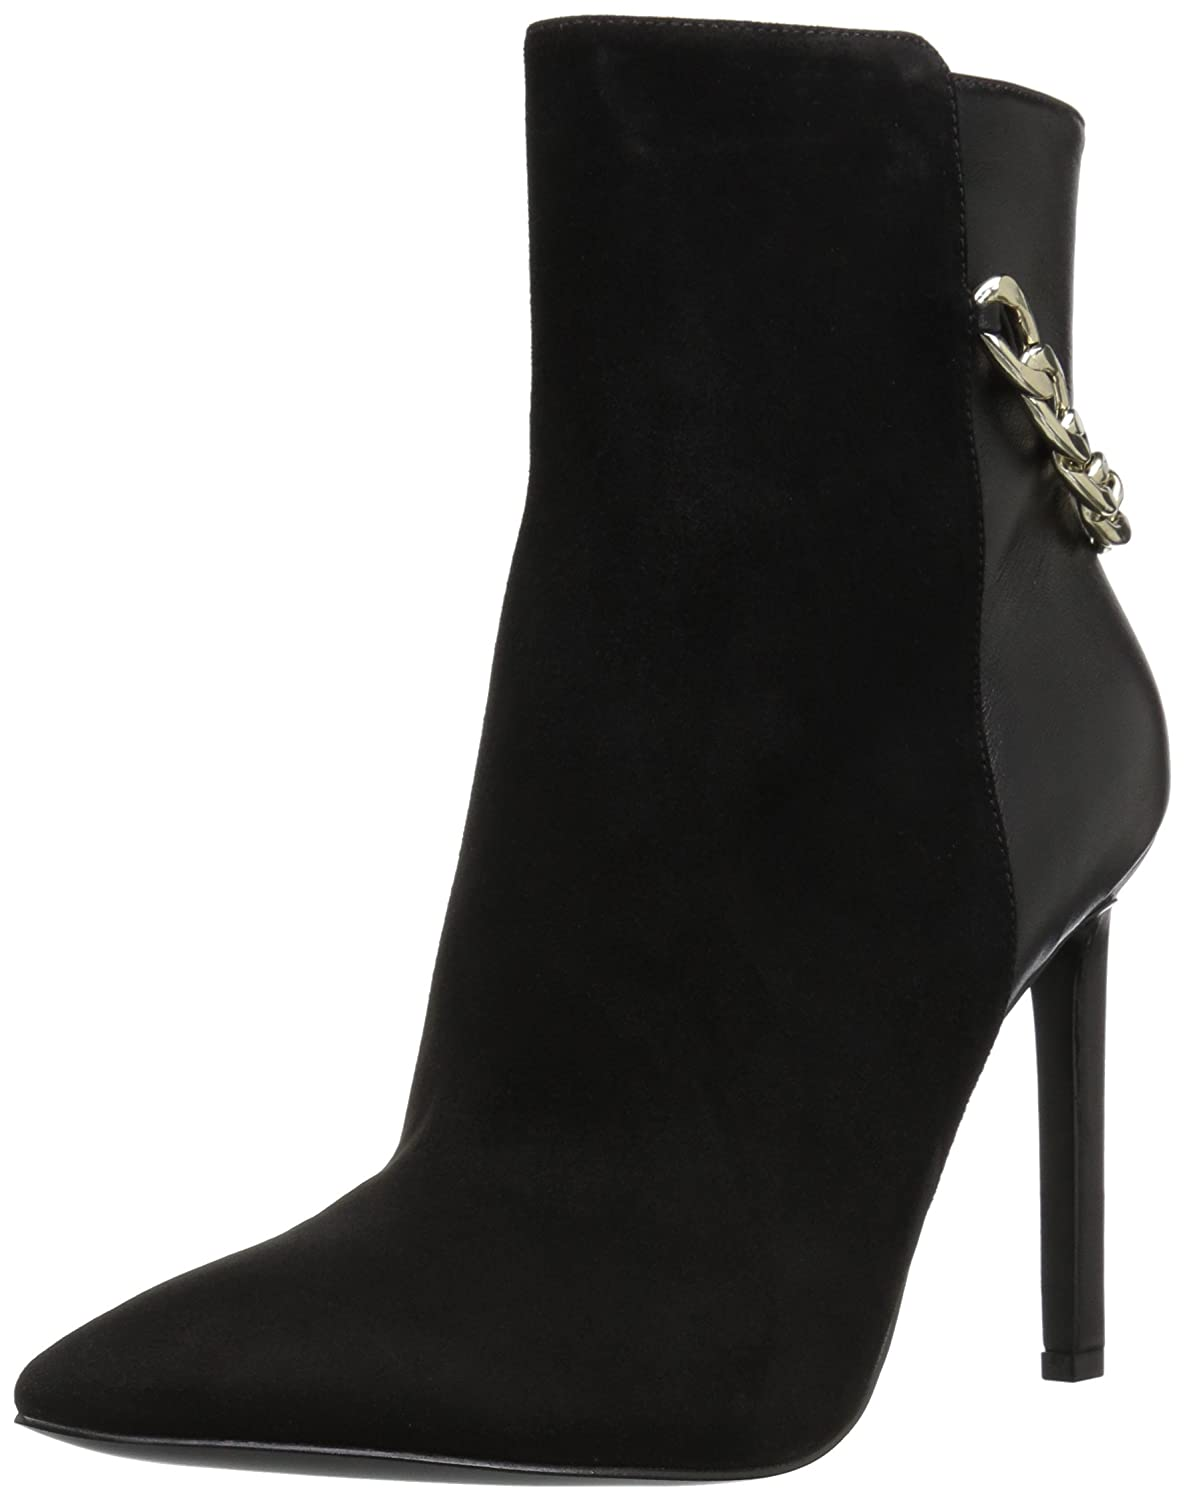 Nine West Women's Tyronah Suede Ankle Boot B01MST3BCH 9 B(M) US|Black